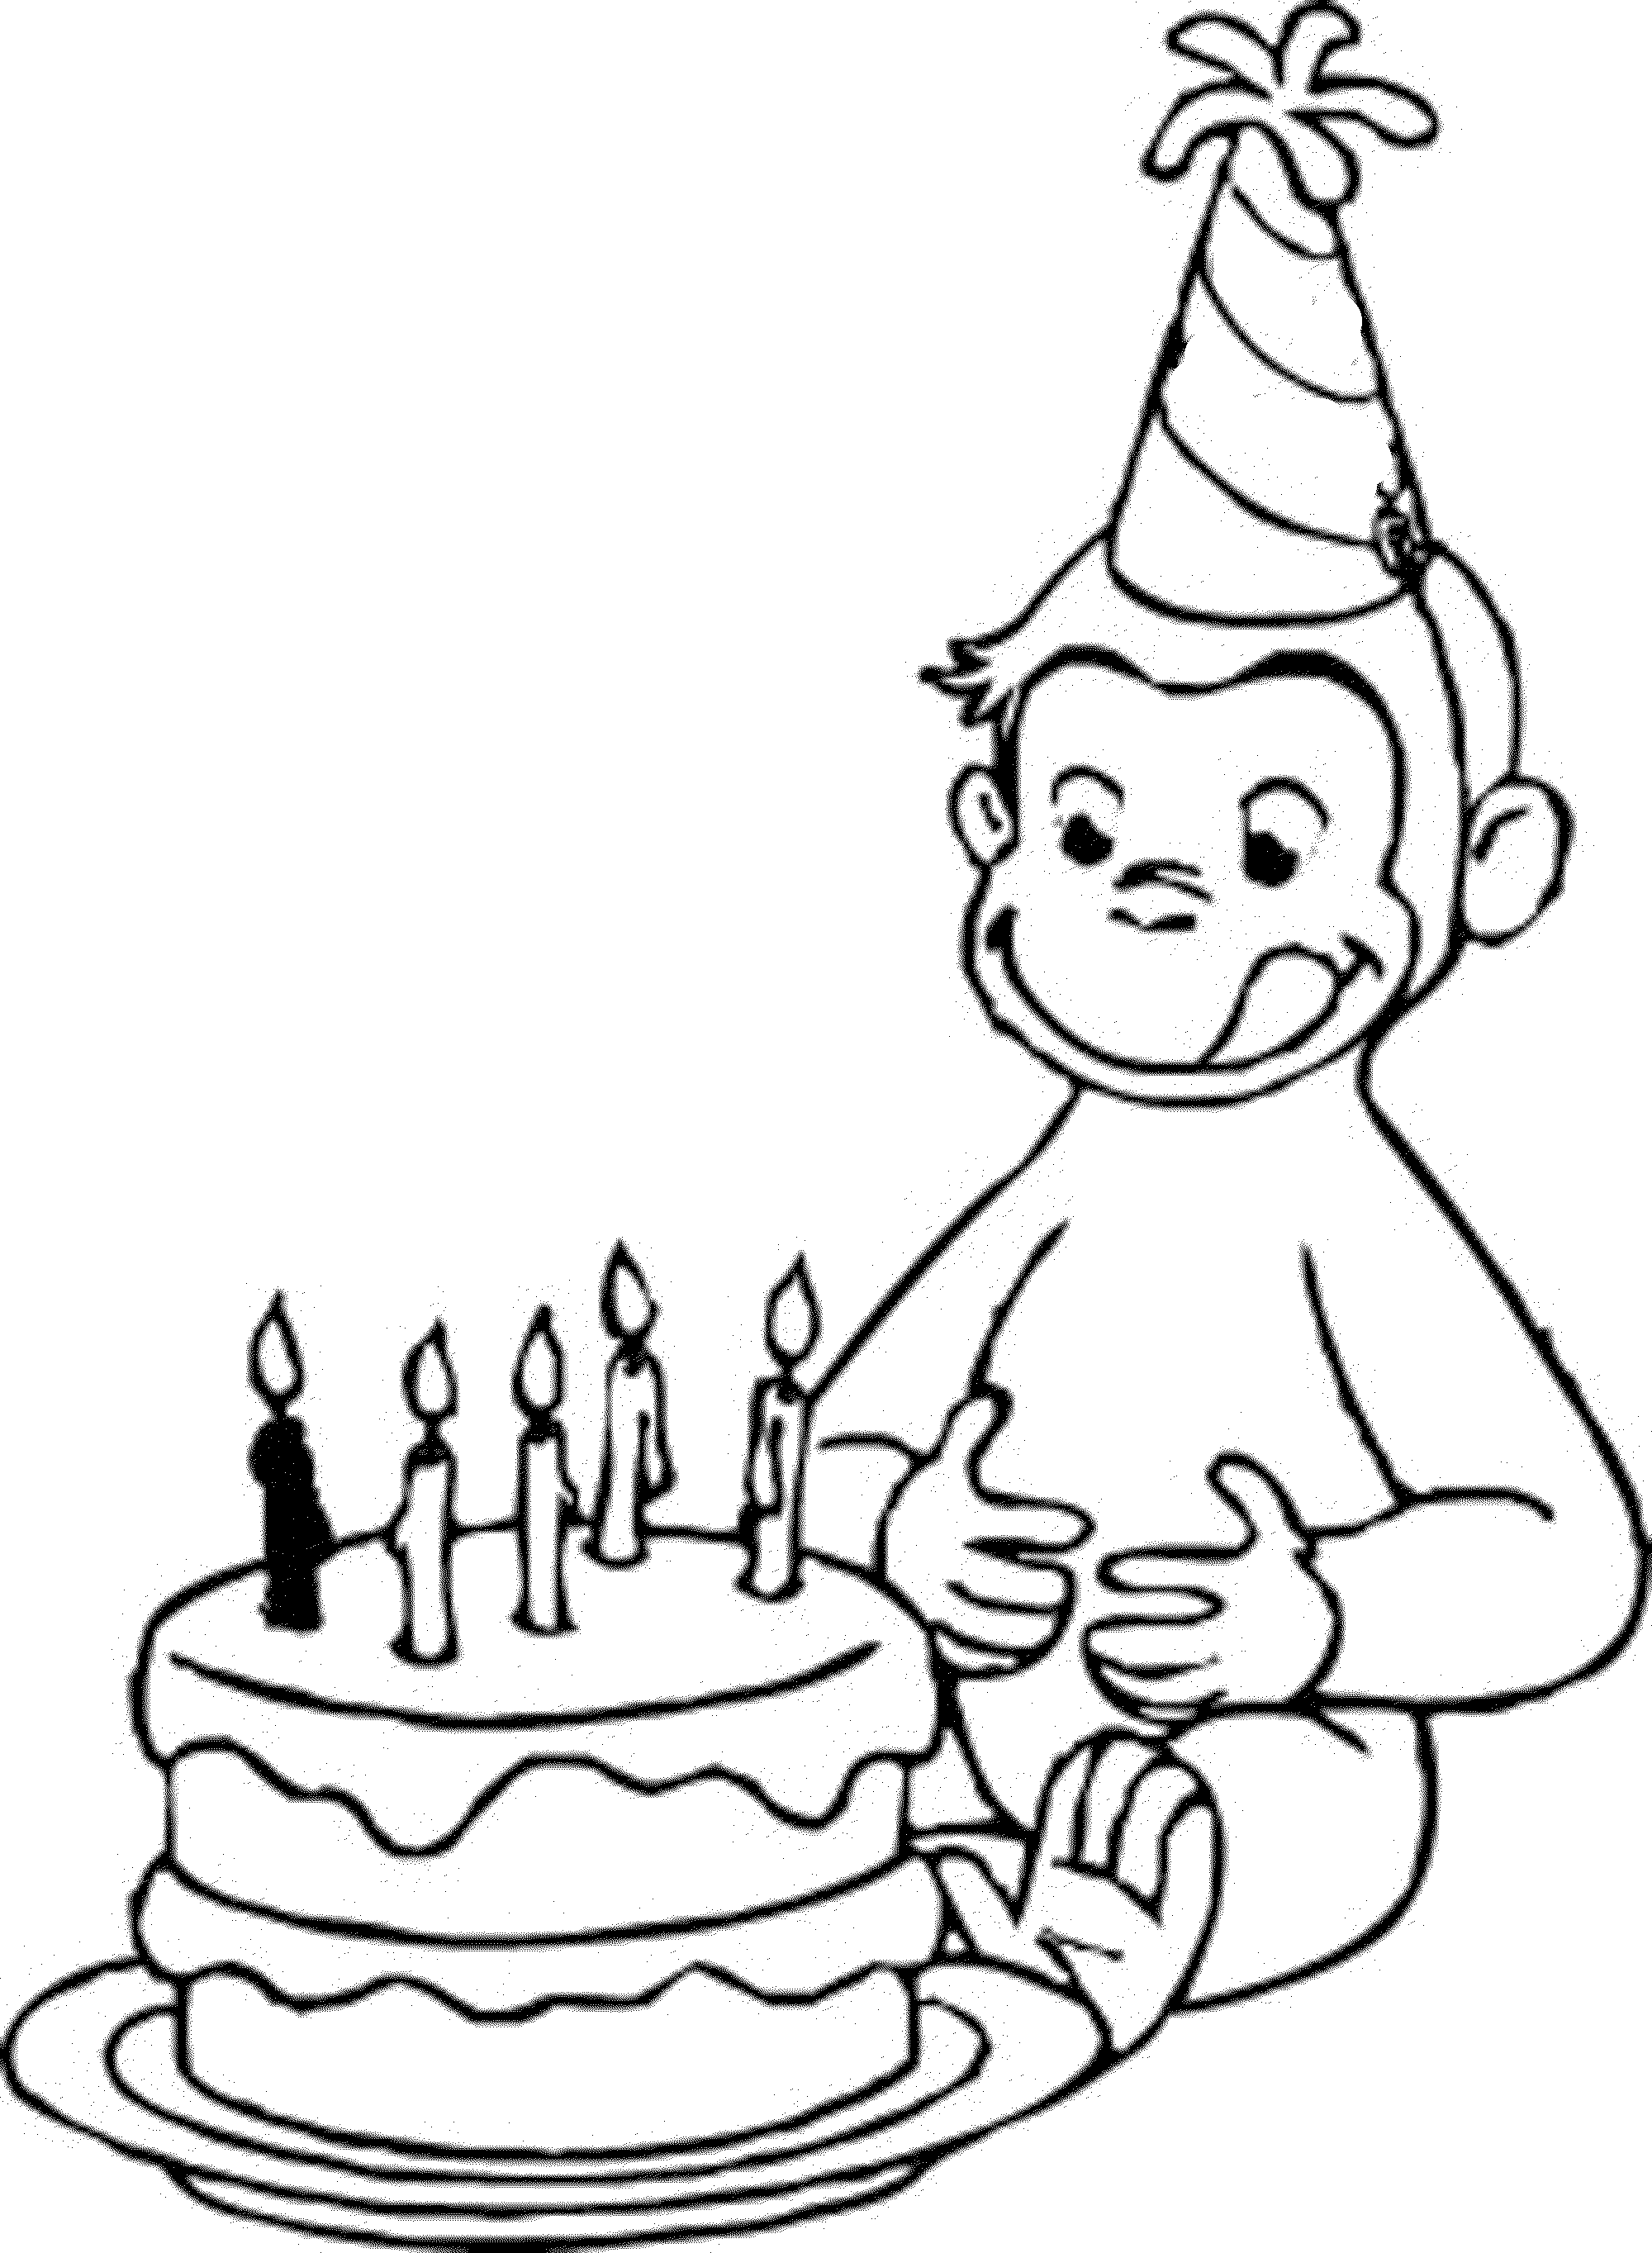 Happy birthday coloring pages 360coloringpages for Happy birthday coloring pages for kids